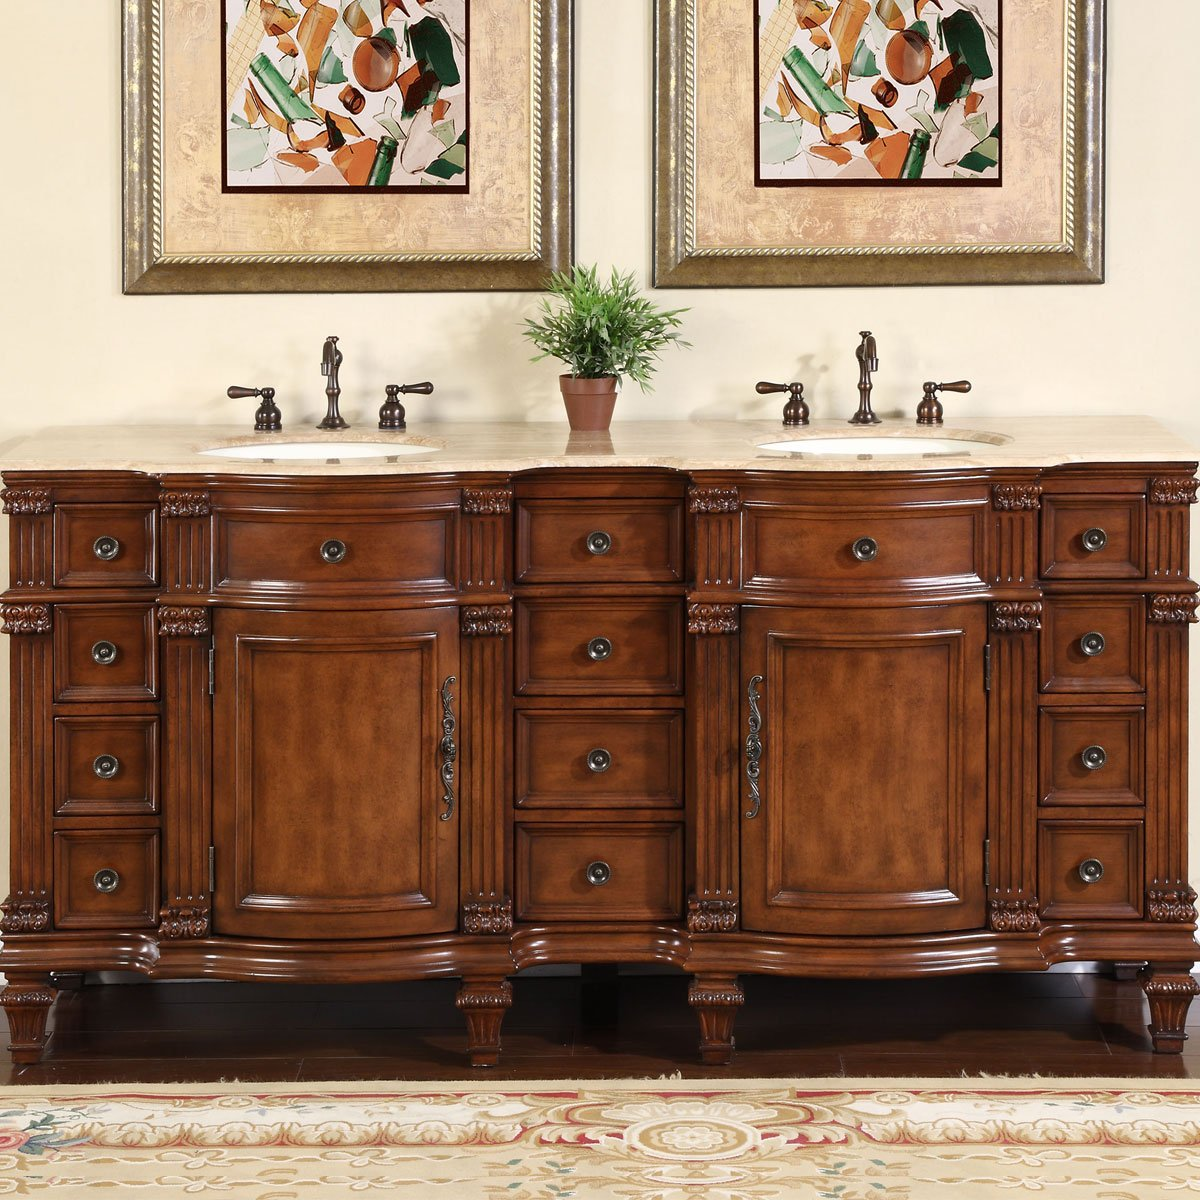 Etonnant Amazon.com: Silkroad Exclusive Travertine Stone Top Double Sink Bathroom  Vanity With Furniture Bath Cabinet, 72 Inch: Home U0026 Kitchen